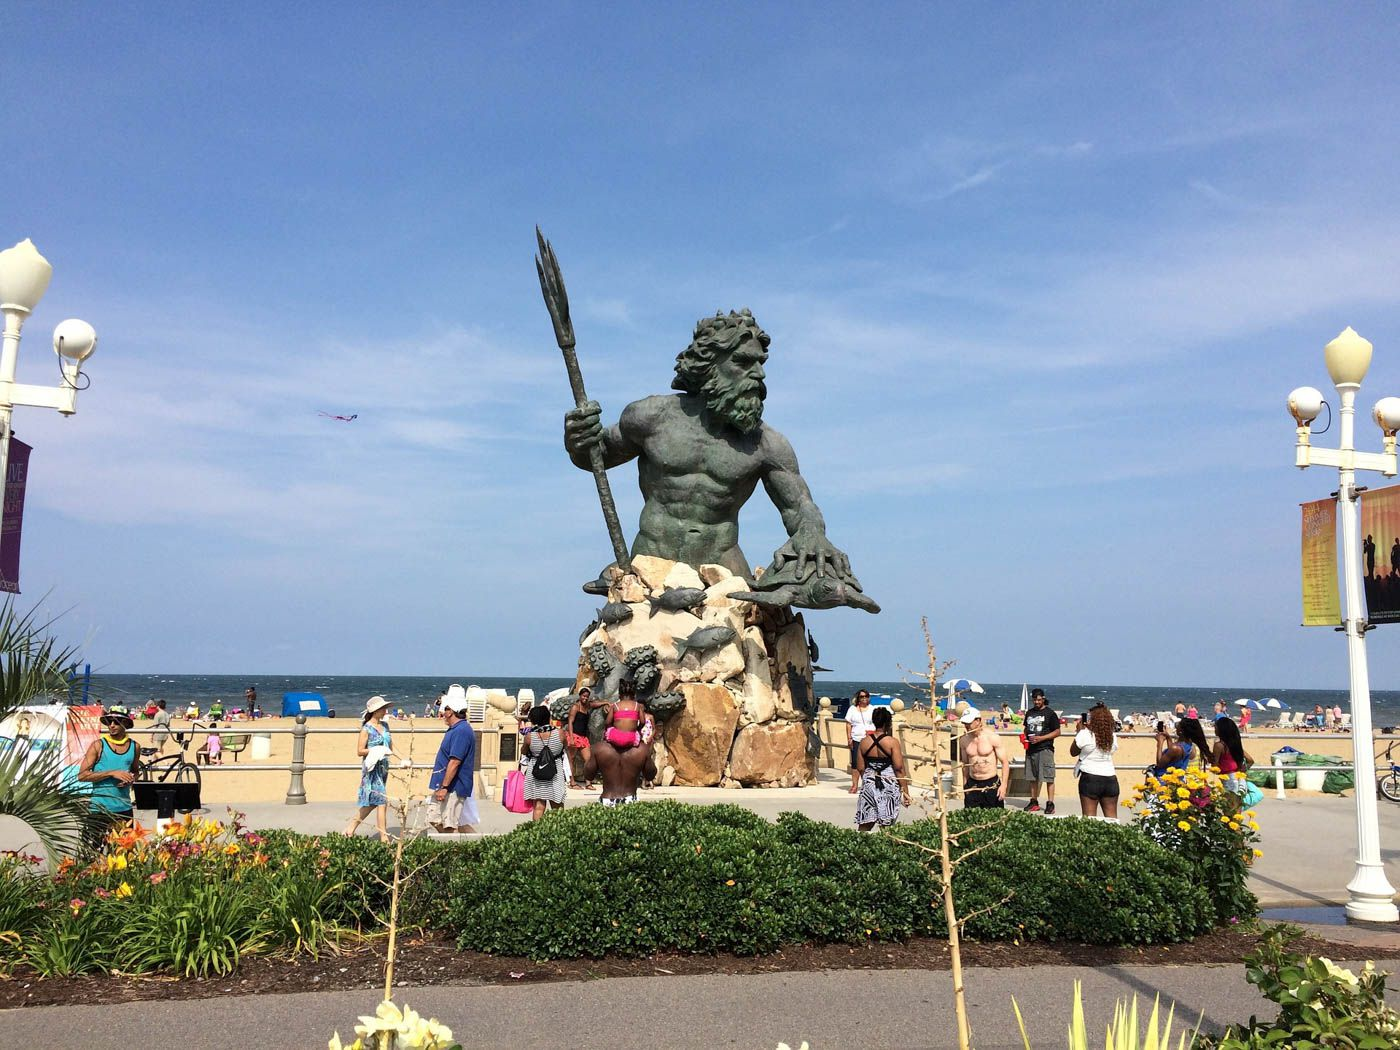 Virginia Beach Travel Costs & Prices - The Beach, The ...